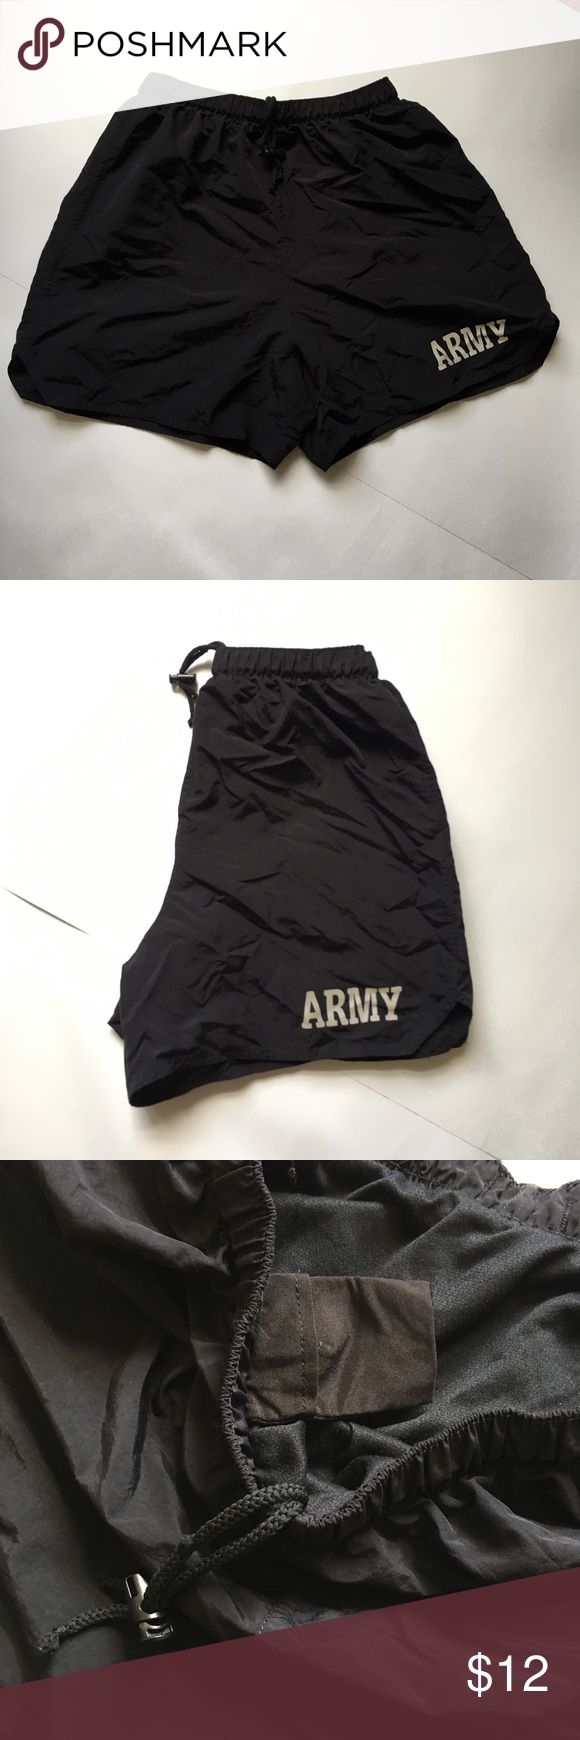 """Army Shorts Physical Training Trunks Uniform Army PT Shorts, IPFU Physical Fitness Training Trunks, Black, Military Uniform  Features:  -waist band -small waist pocket  Size and Measurements: - No size but best fit for S-L (small-large) - Length: 15.5"""" - Waist relaxed: 23"""" - Waist stretched: 38""""  Flaws:  None army Shorts Athletic"""